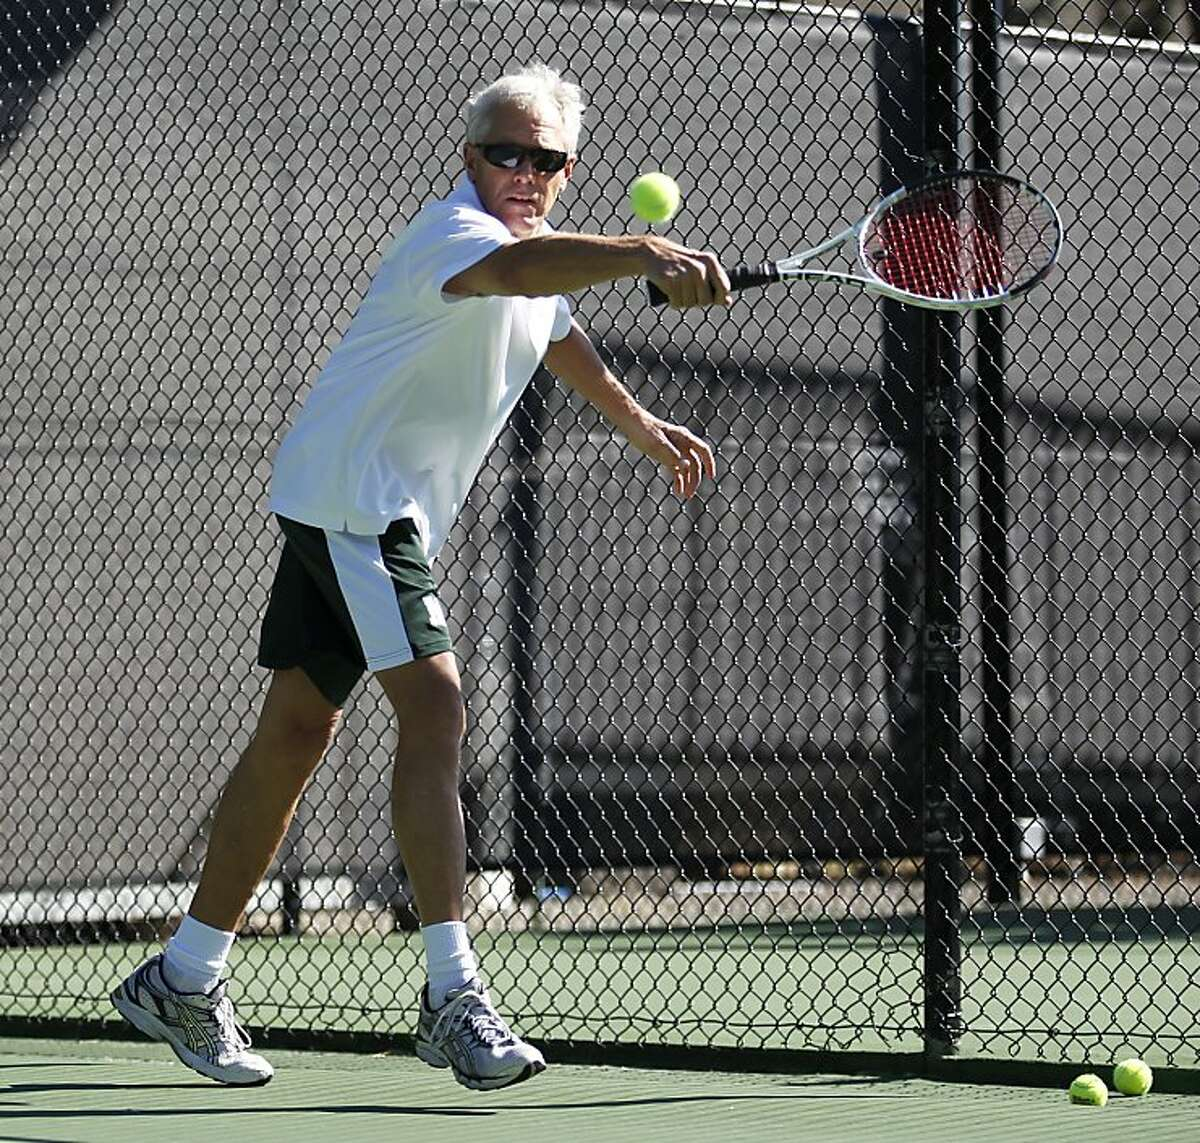 San Francisco Chronicle columnist Scott Ostler attempts to return a ball served by professional tennis player Ivo Karlovic on Thursday, October 13, 2011 at the Tiburon Peninsula Club in Tiburon, Calif. Ivo Karlovic serve is able to reach speeds of 150 miles per hour.